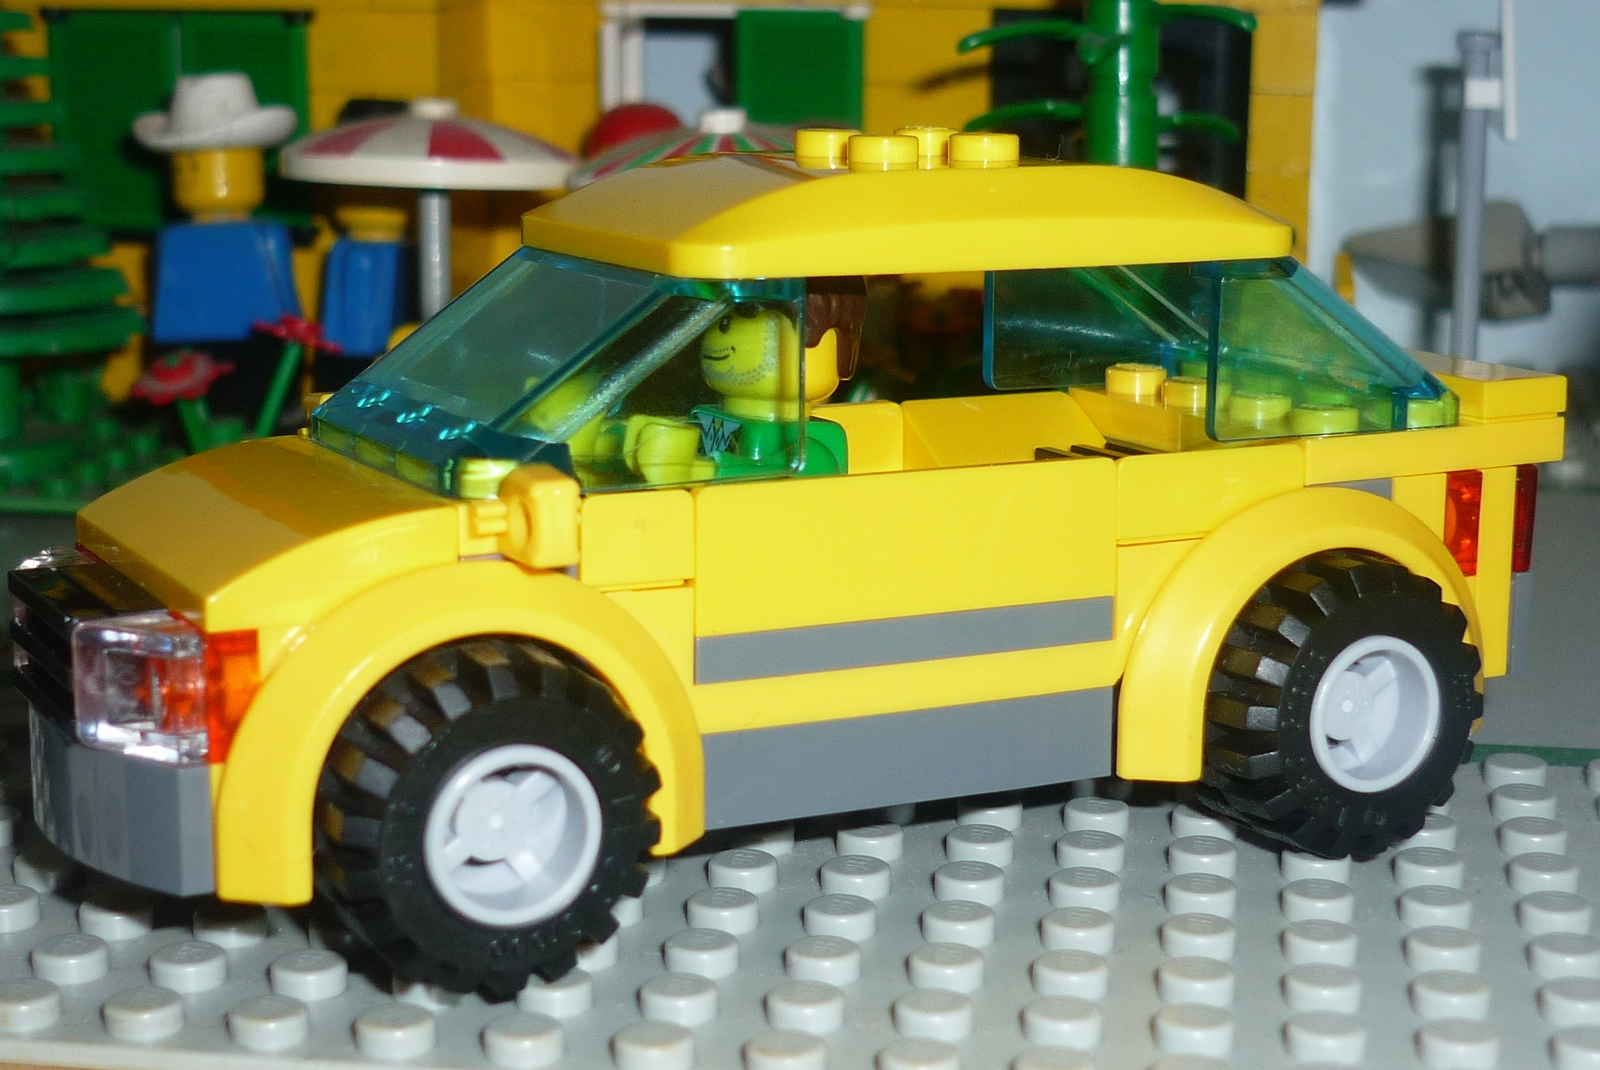 Lego City 4435 – Car and Camper